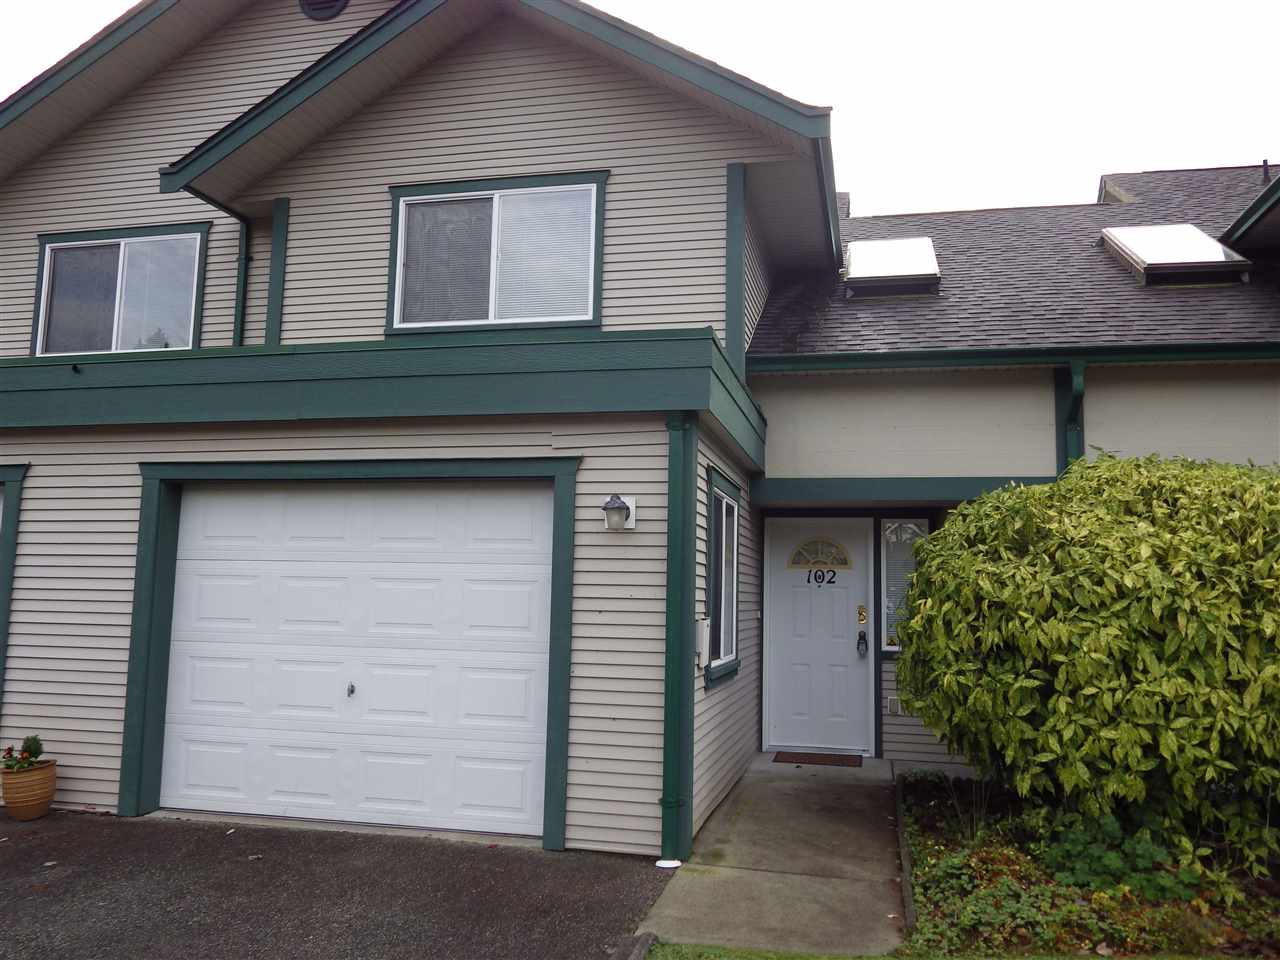 Main Photo: 102 5711 EBBTIDE Street in Sechelt: Sechelt District Townhouse for sale (Sunshine Coast)  : MLS(r) # R2122555